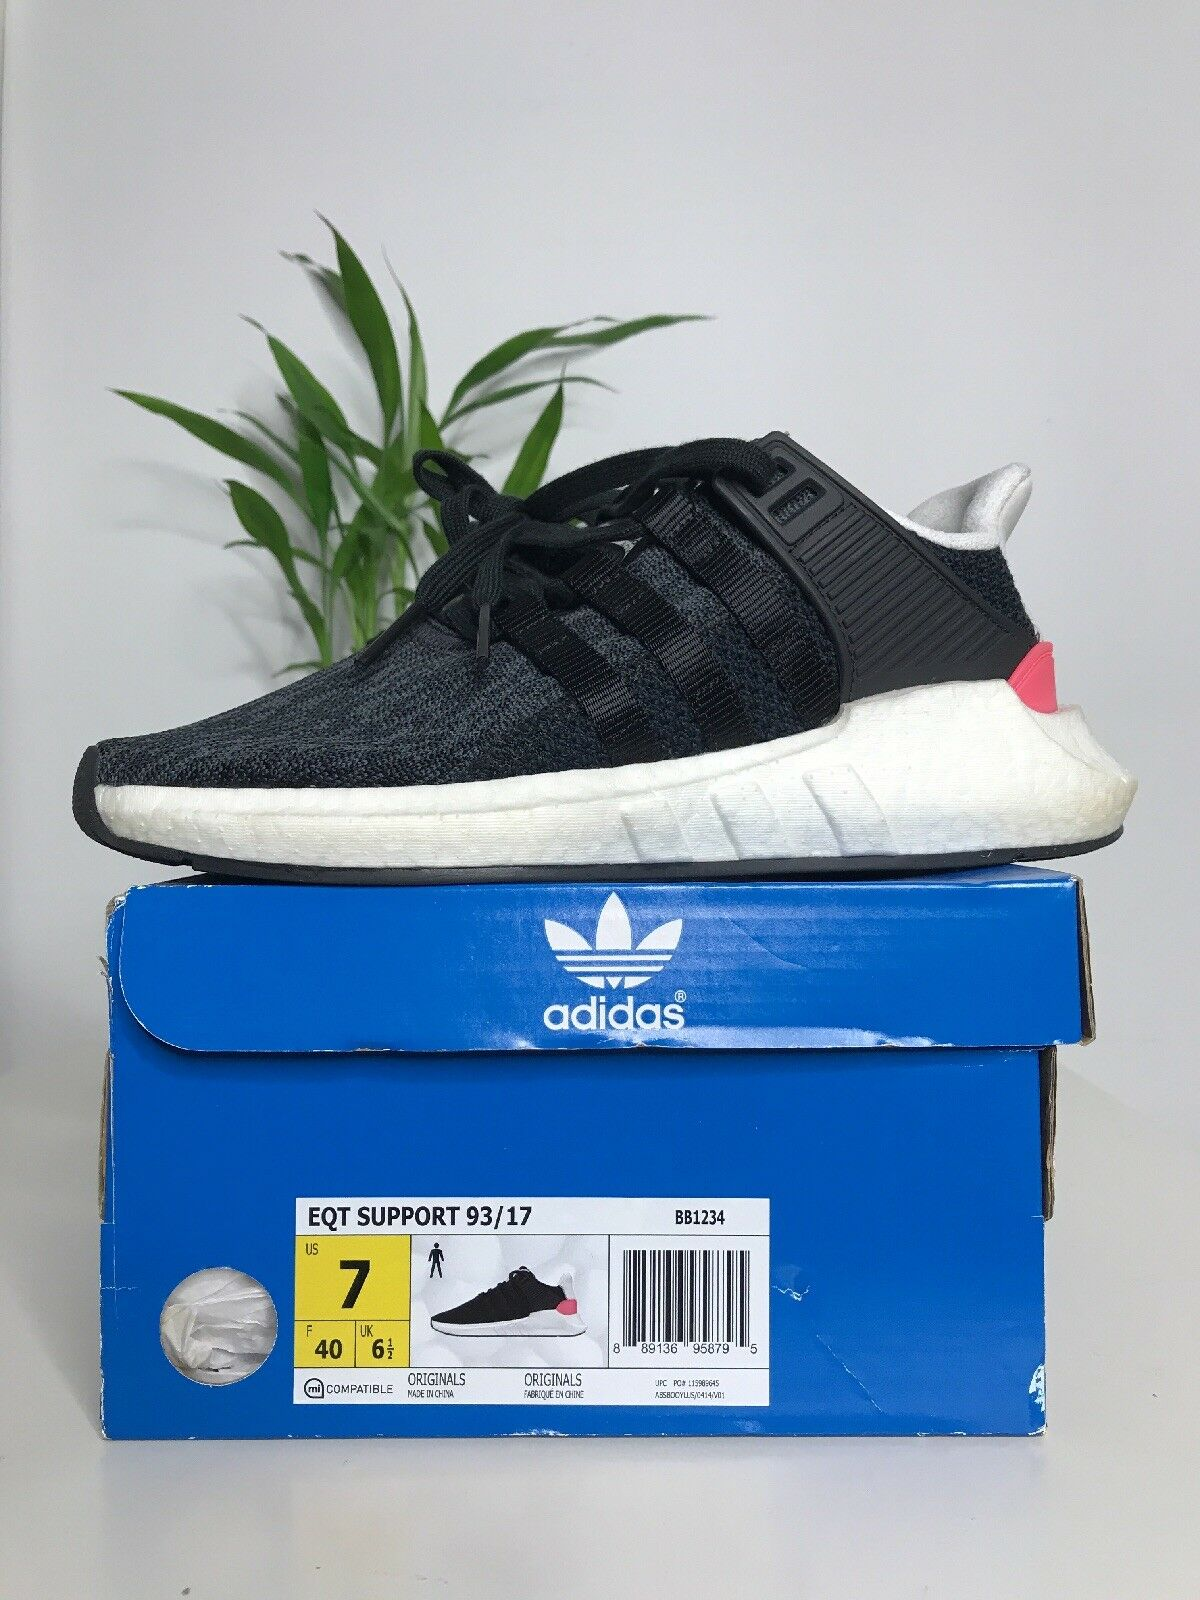 Adidas EQT 93/17 Support Boost Size 7 BB1234 Core Black & Turbo Red